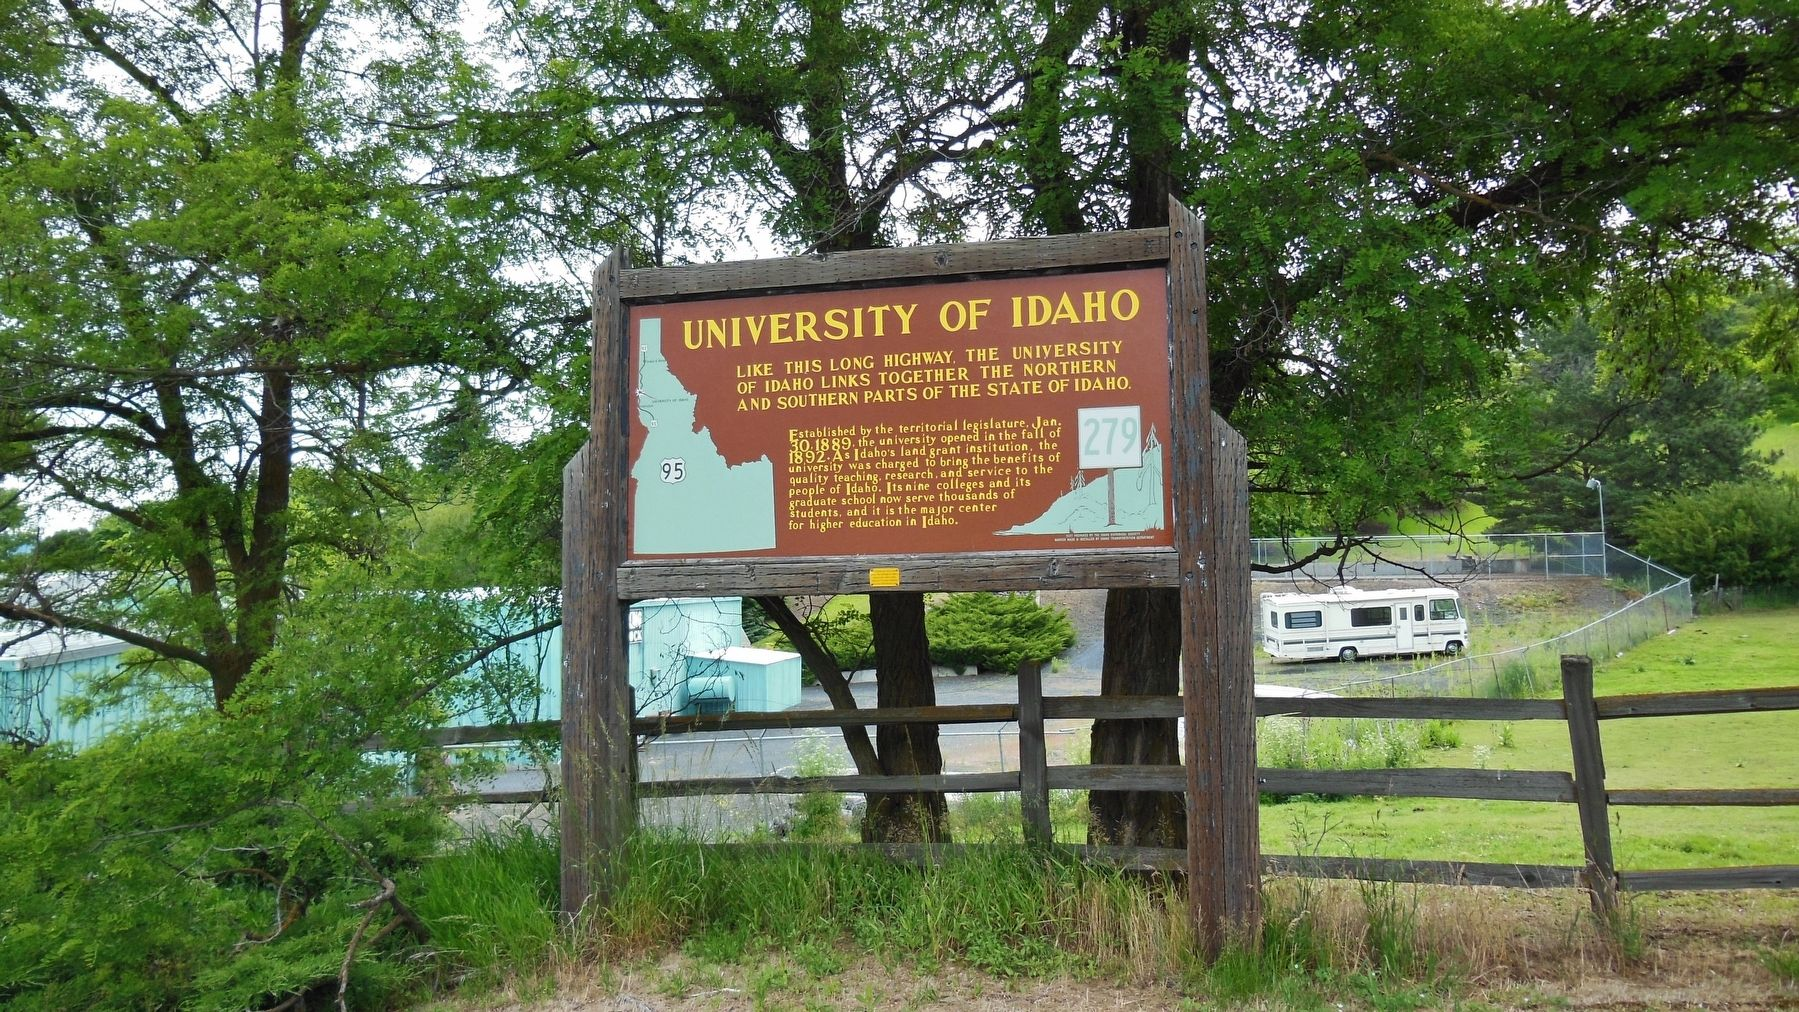 University of Idaho Marker (<i>wide view</i>) image. Click for full size.